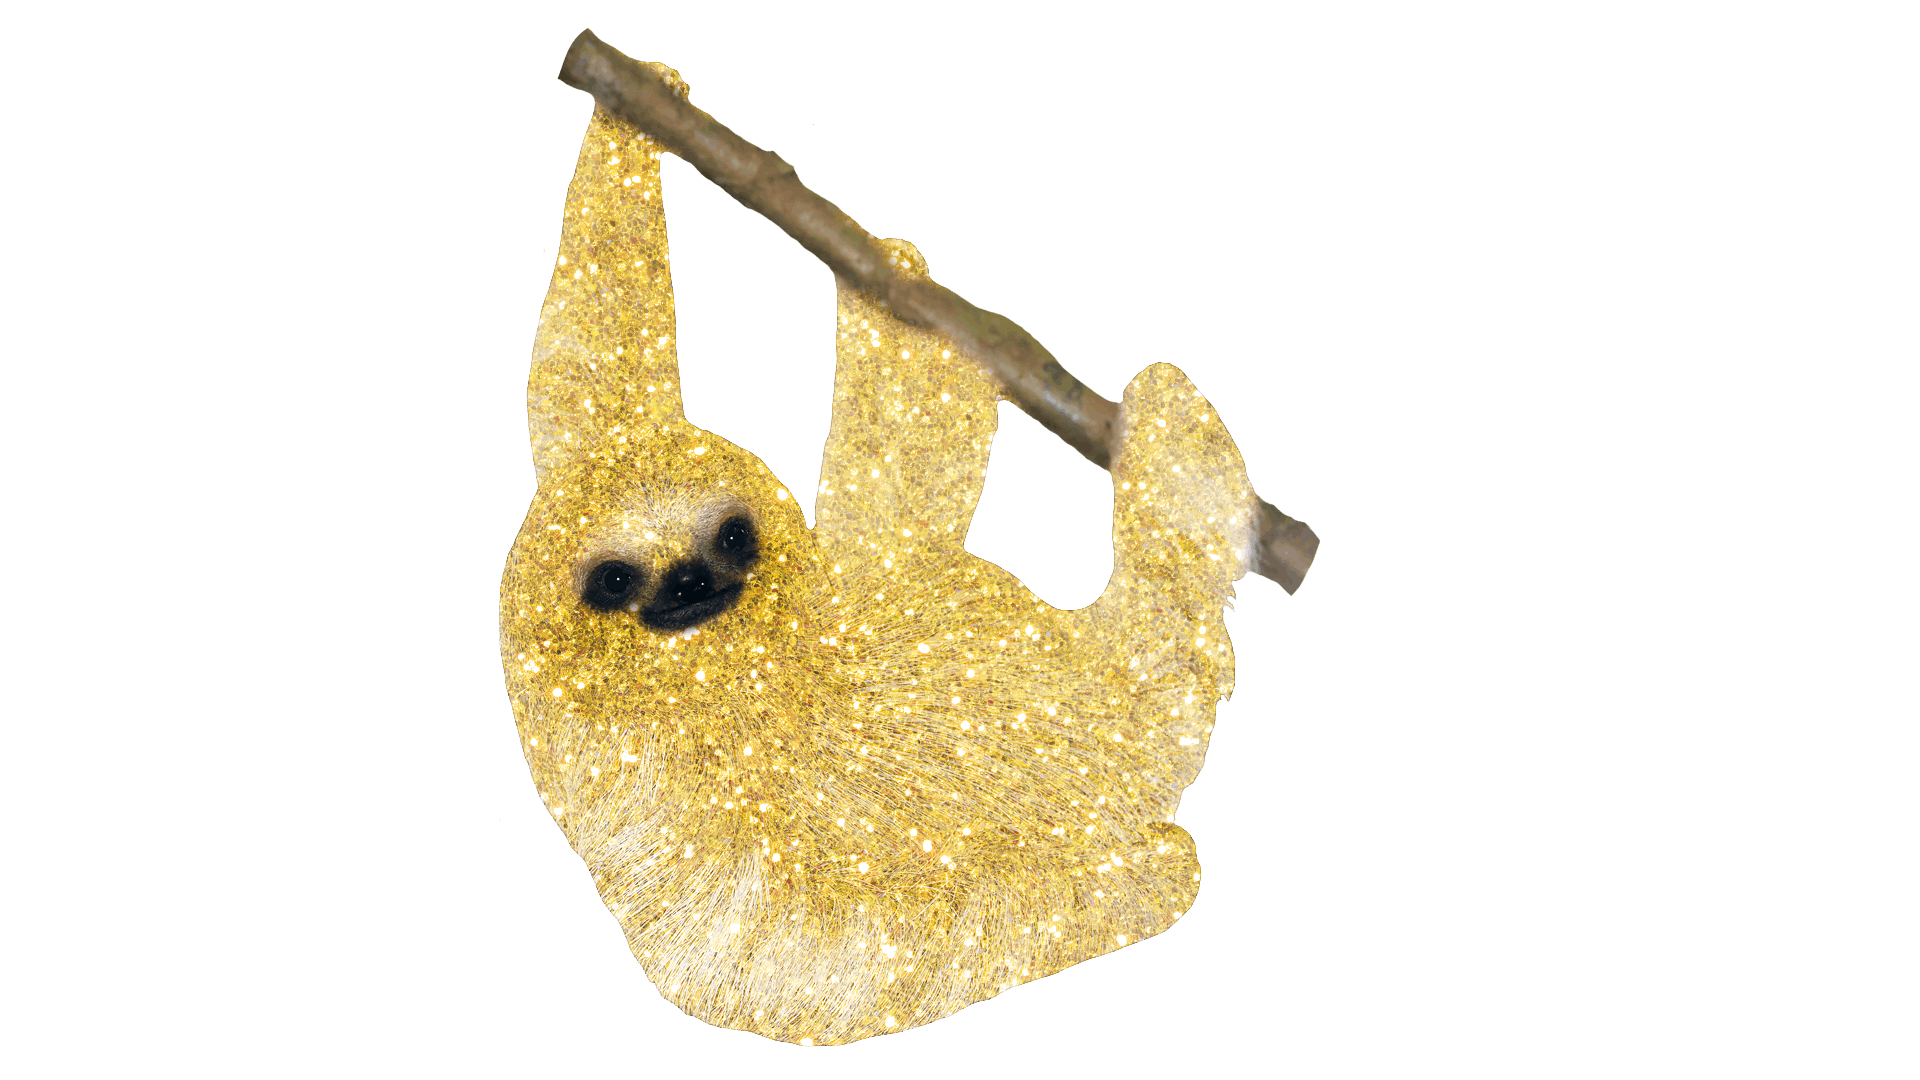 sloth covered in glitter